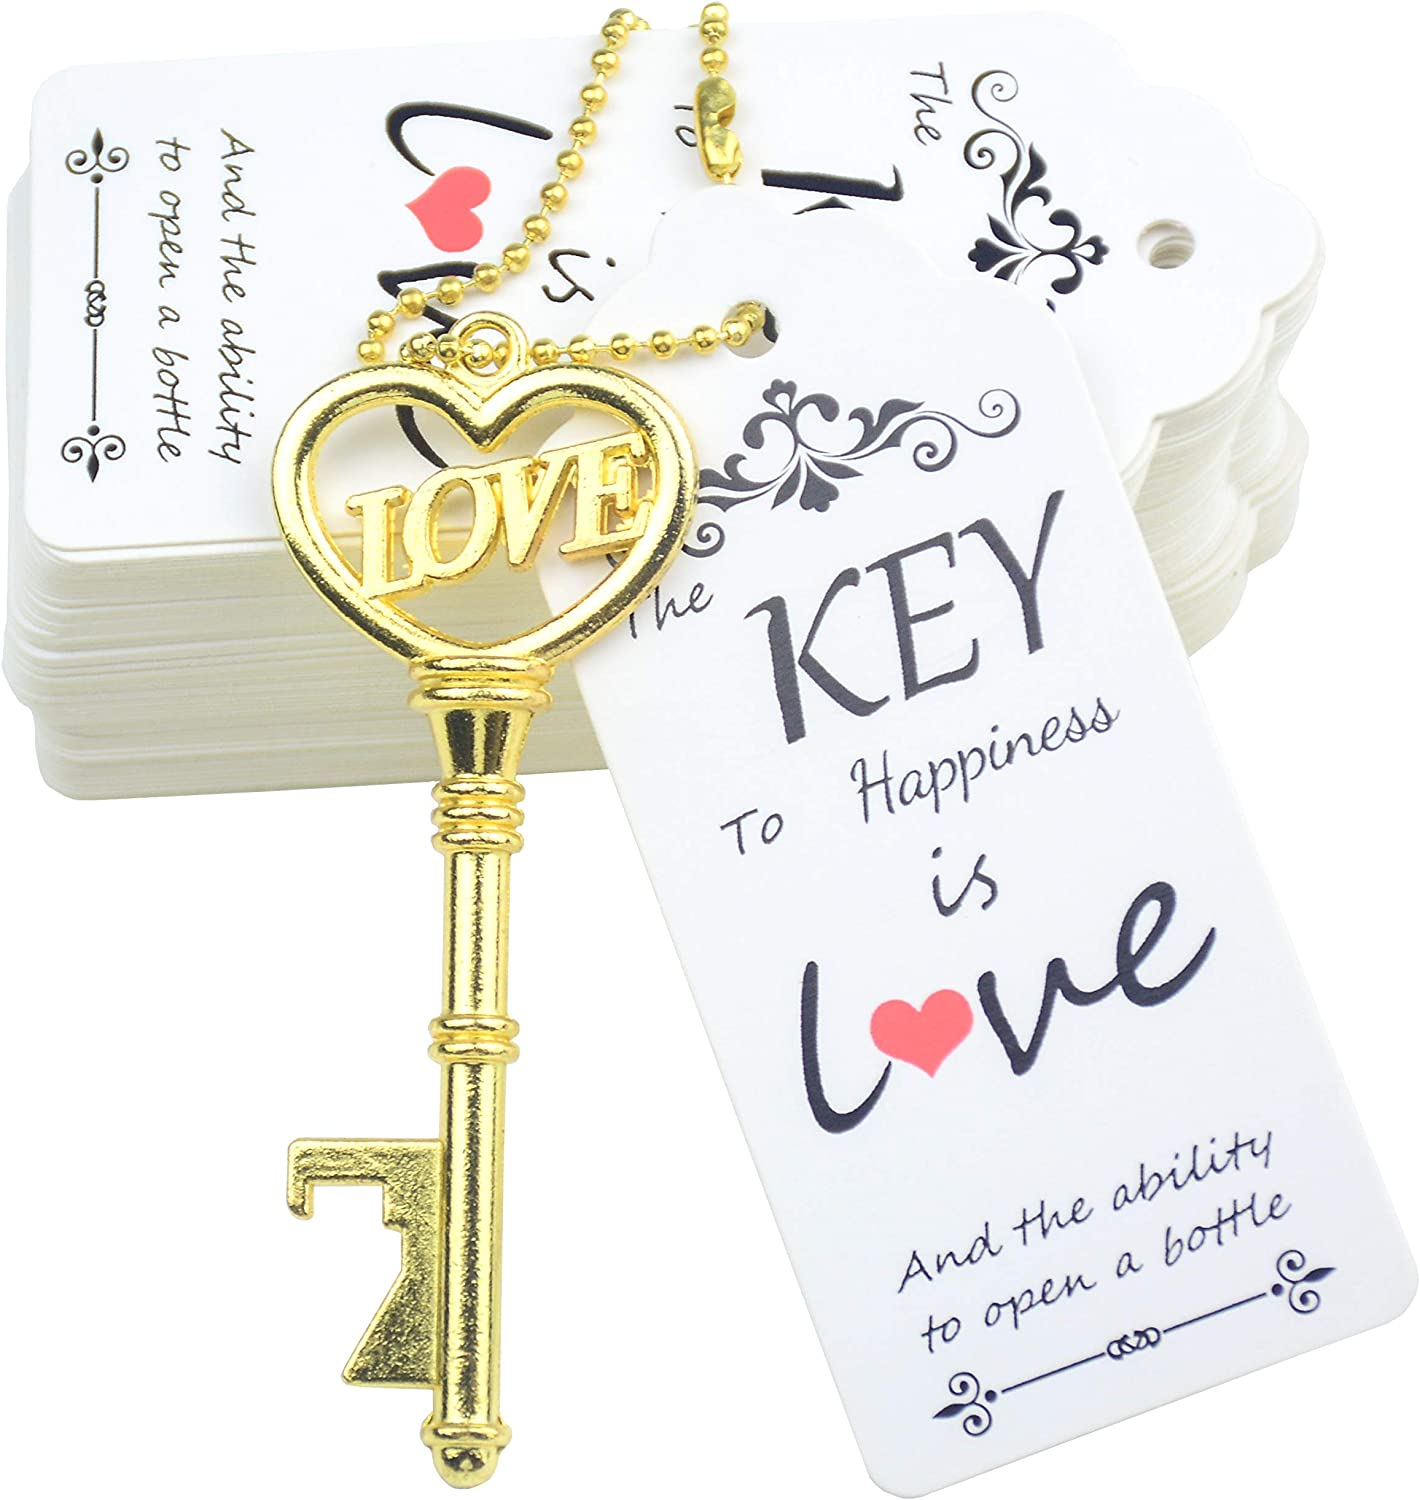 Makhry 52pcs Vintage Skeleton Key Bottle Opener with Love Heart Escort Thank You Tags and Keychain as Wedding Favor for Wedding Guest Wedding Decor (Gold)